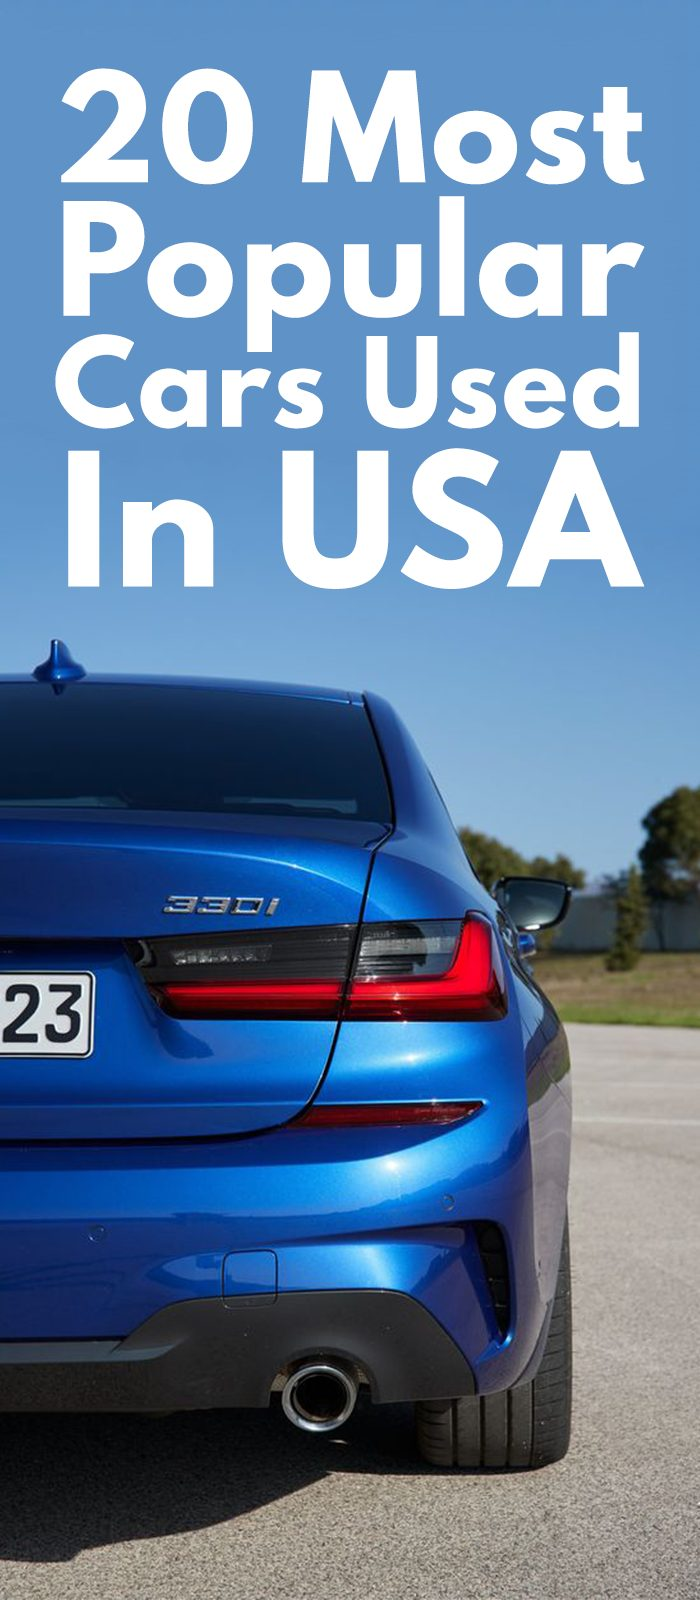 20 Most Popular Cars Used In USA